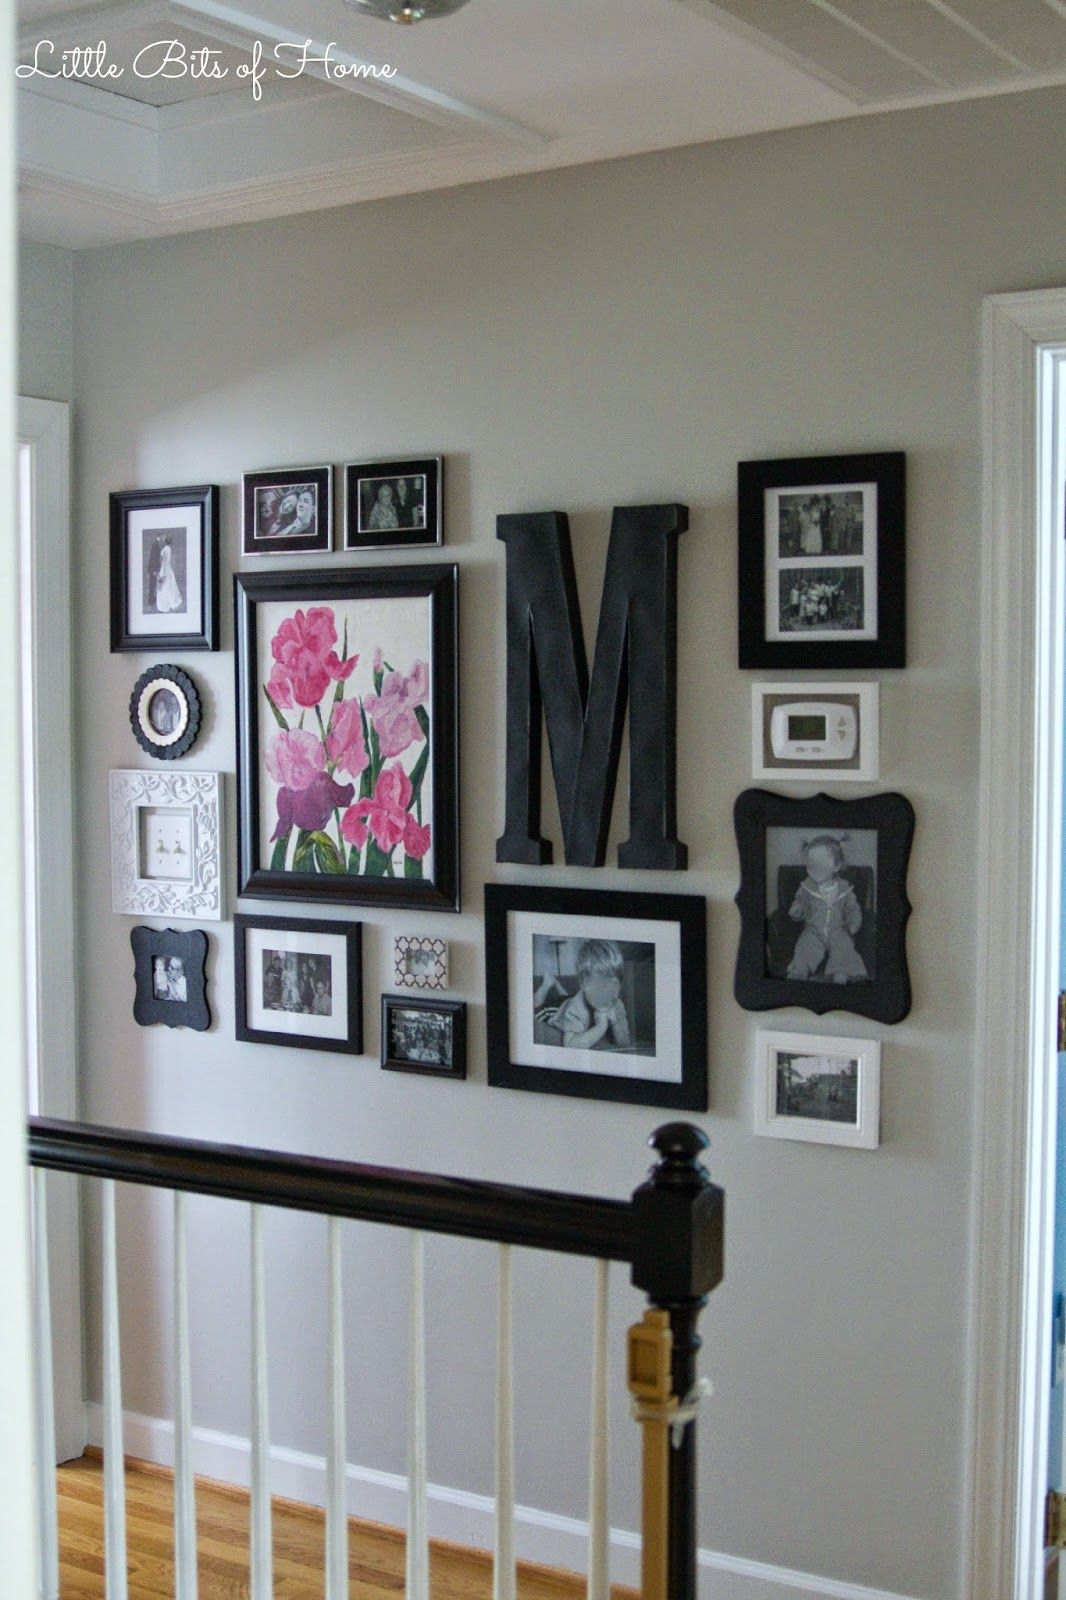 Little Bits of Home Hallway Gallery Wall crafts Pinterest